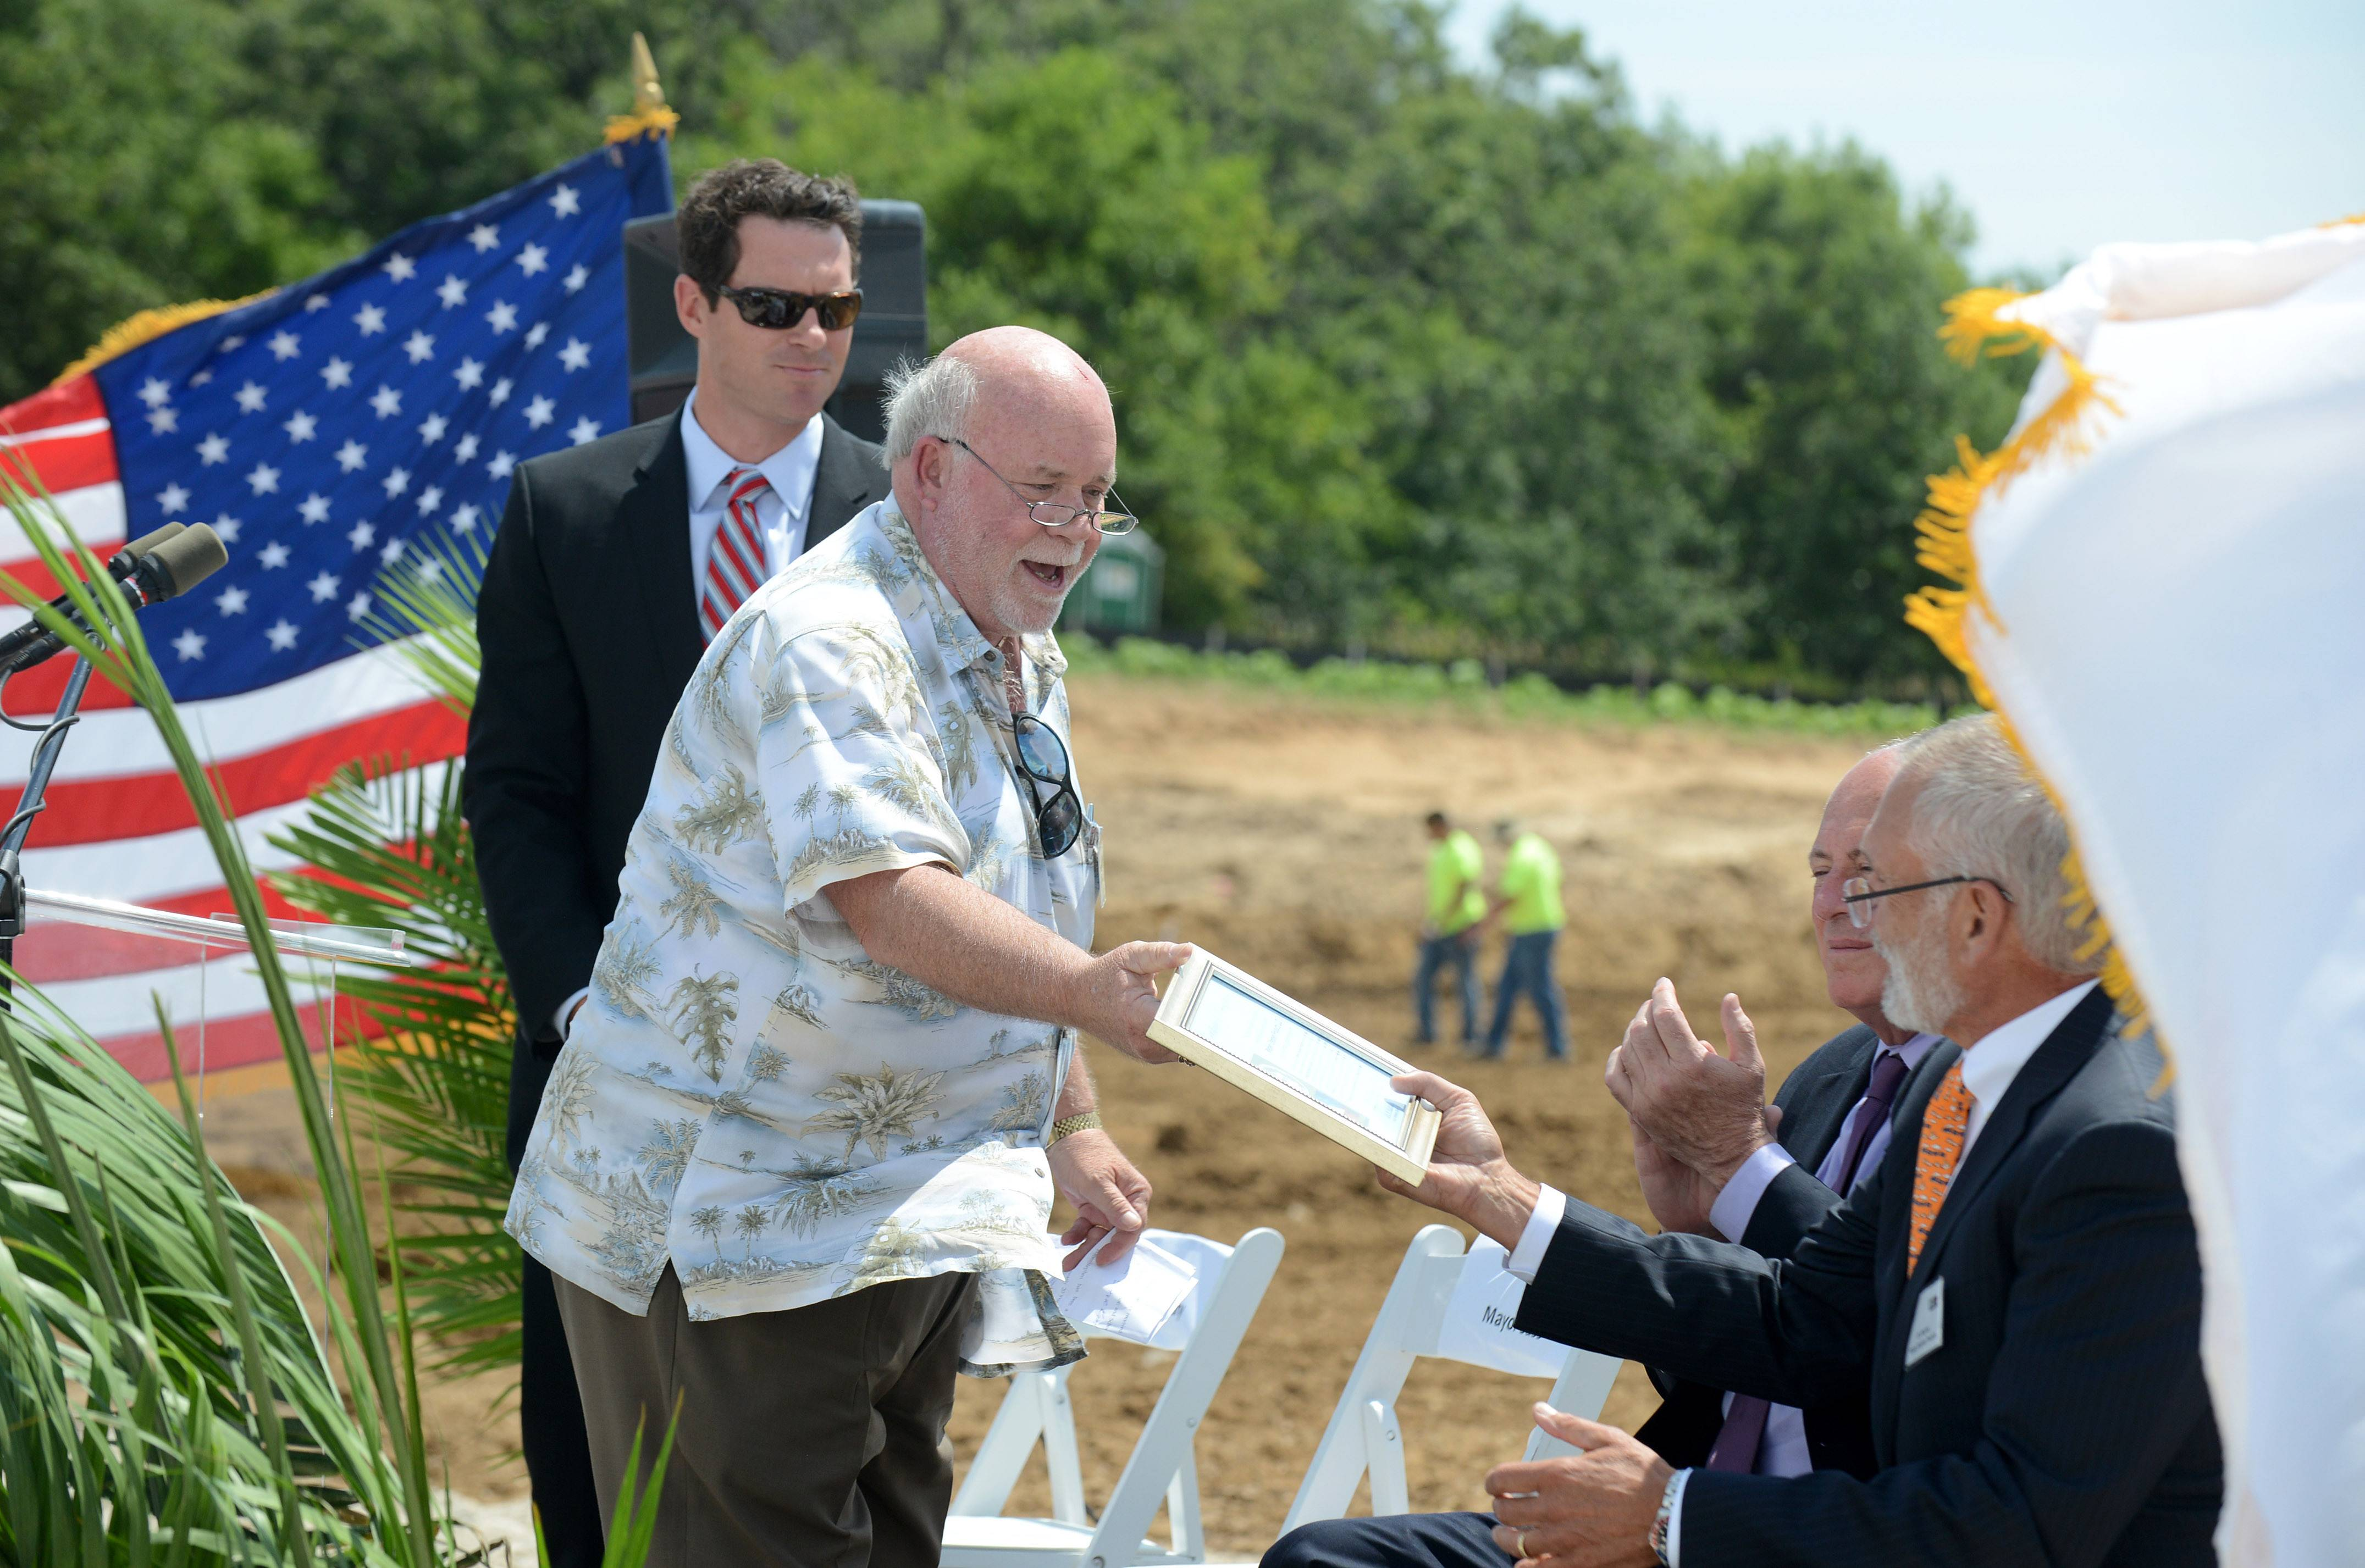 Huntley Mayor Charles Sass presents Weber-Stephen Products Executive Chairman James Stephen with a certificate of recognition at the groundbreaking event for the company's new global distribution center in Huntley on Friday.